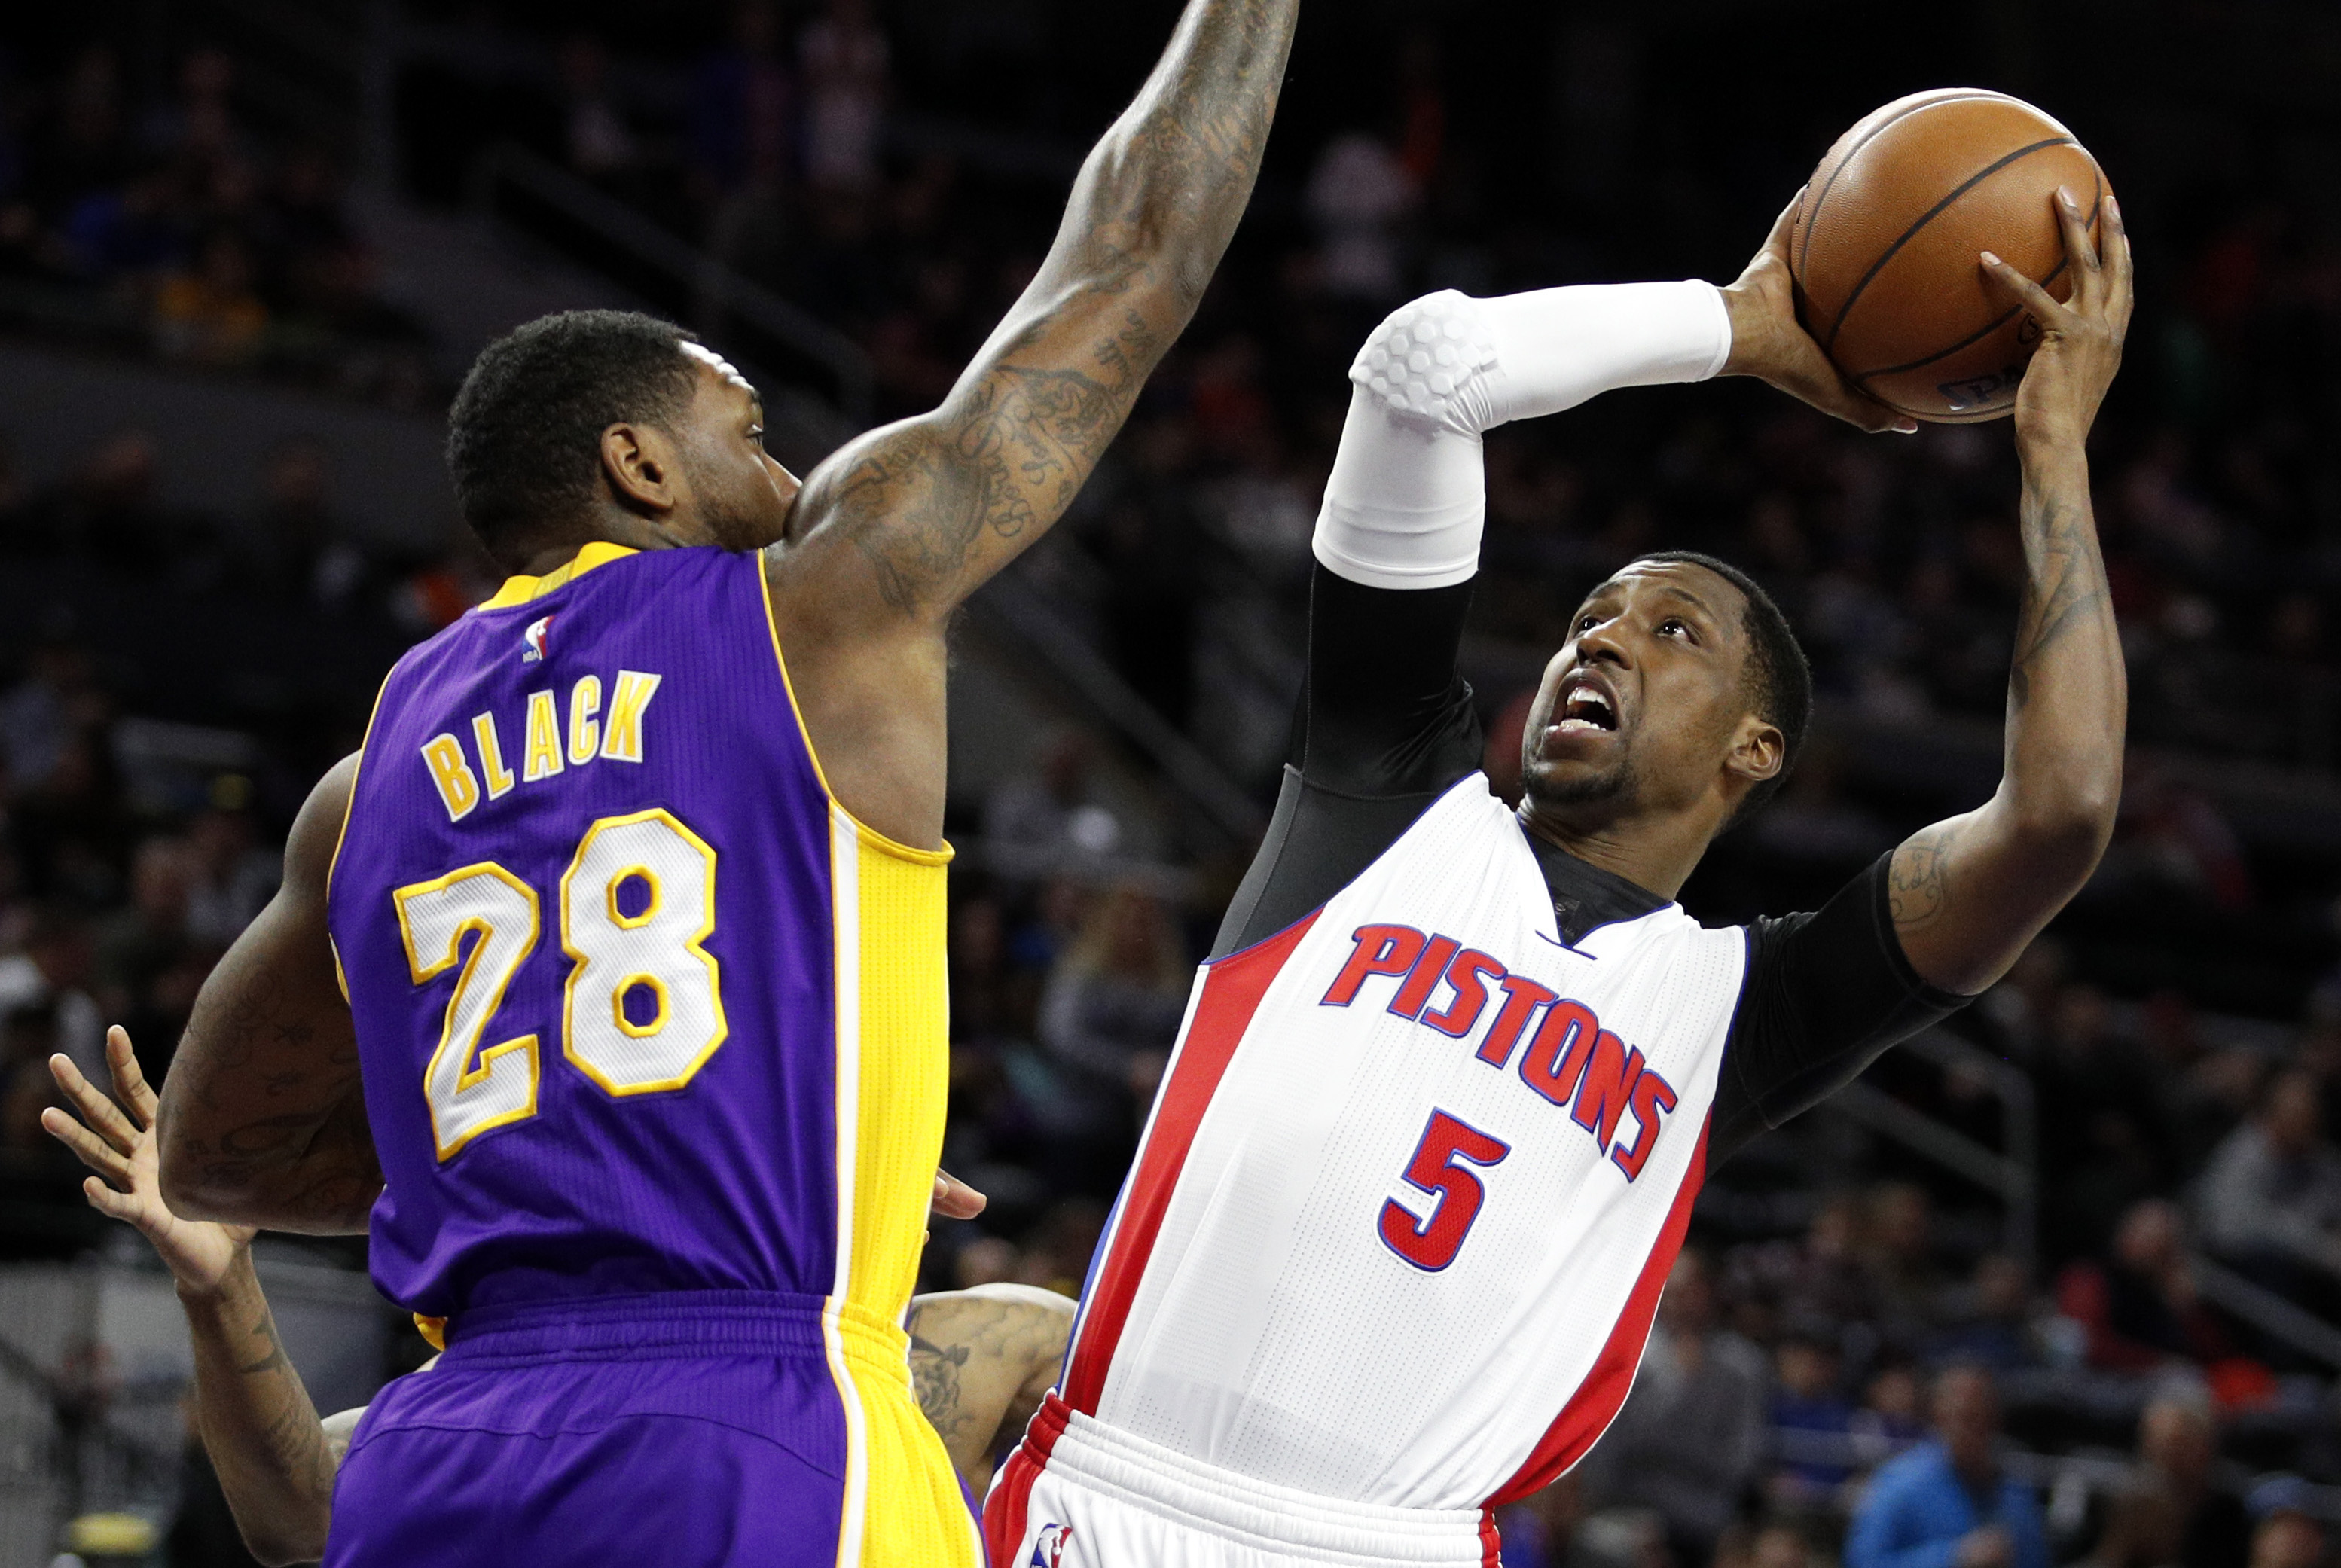 Feb 8, 2017; Auburn Hills, MI, USA; Detroit Pistons guard Kentavious Caldwell-Pope (5) attempts a shot against Los Angeles Lakers center Tarik Black (28) during the first quarter at The Palace of Auburn Hills. Mandatory Credit: Raj Mehta-USA TODAY Sports